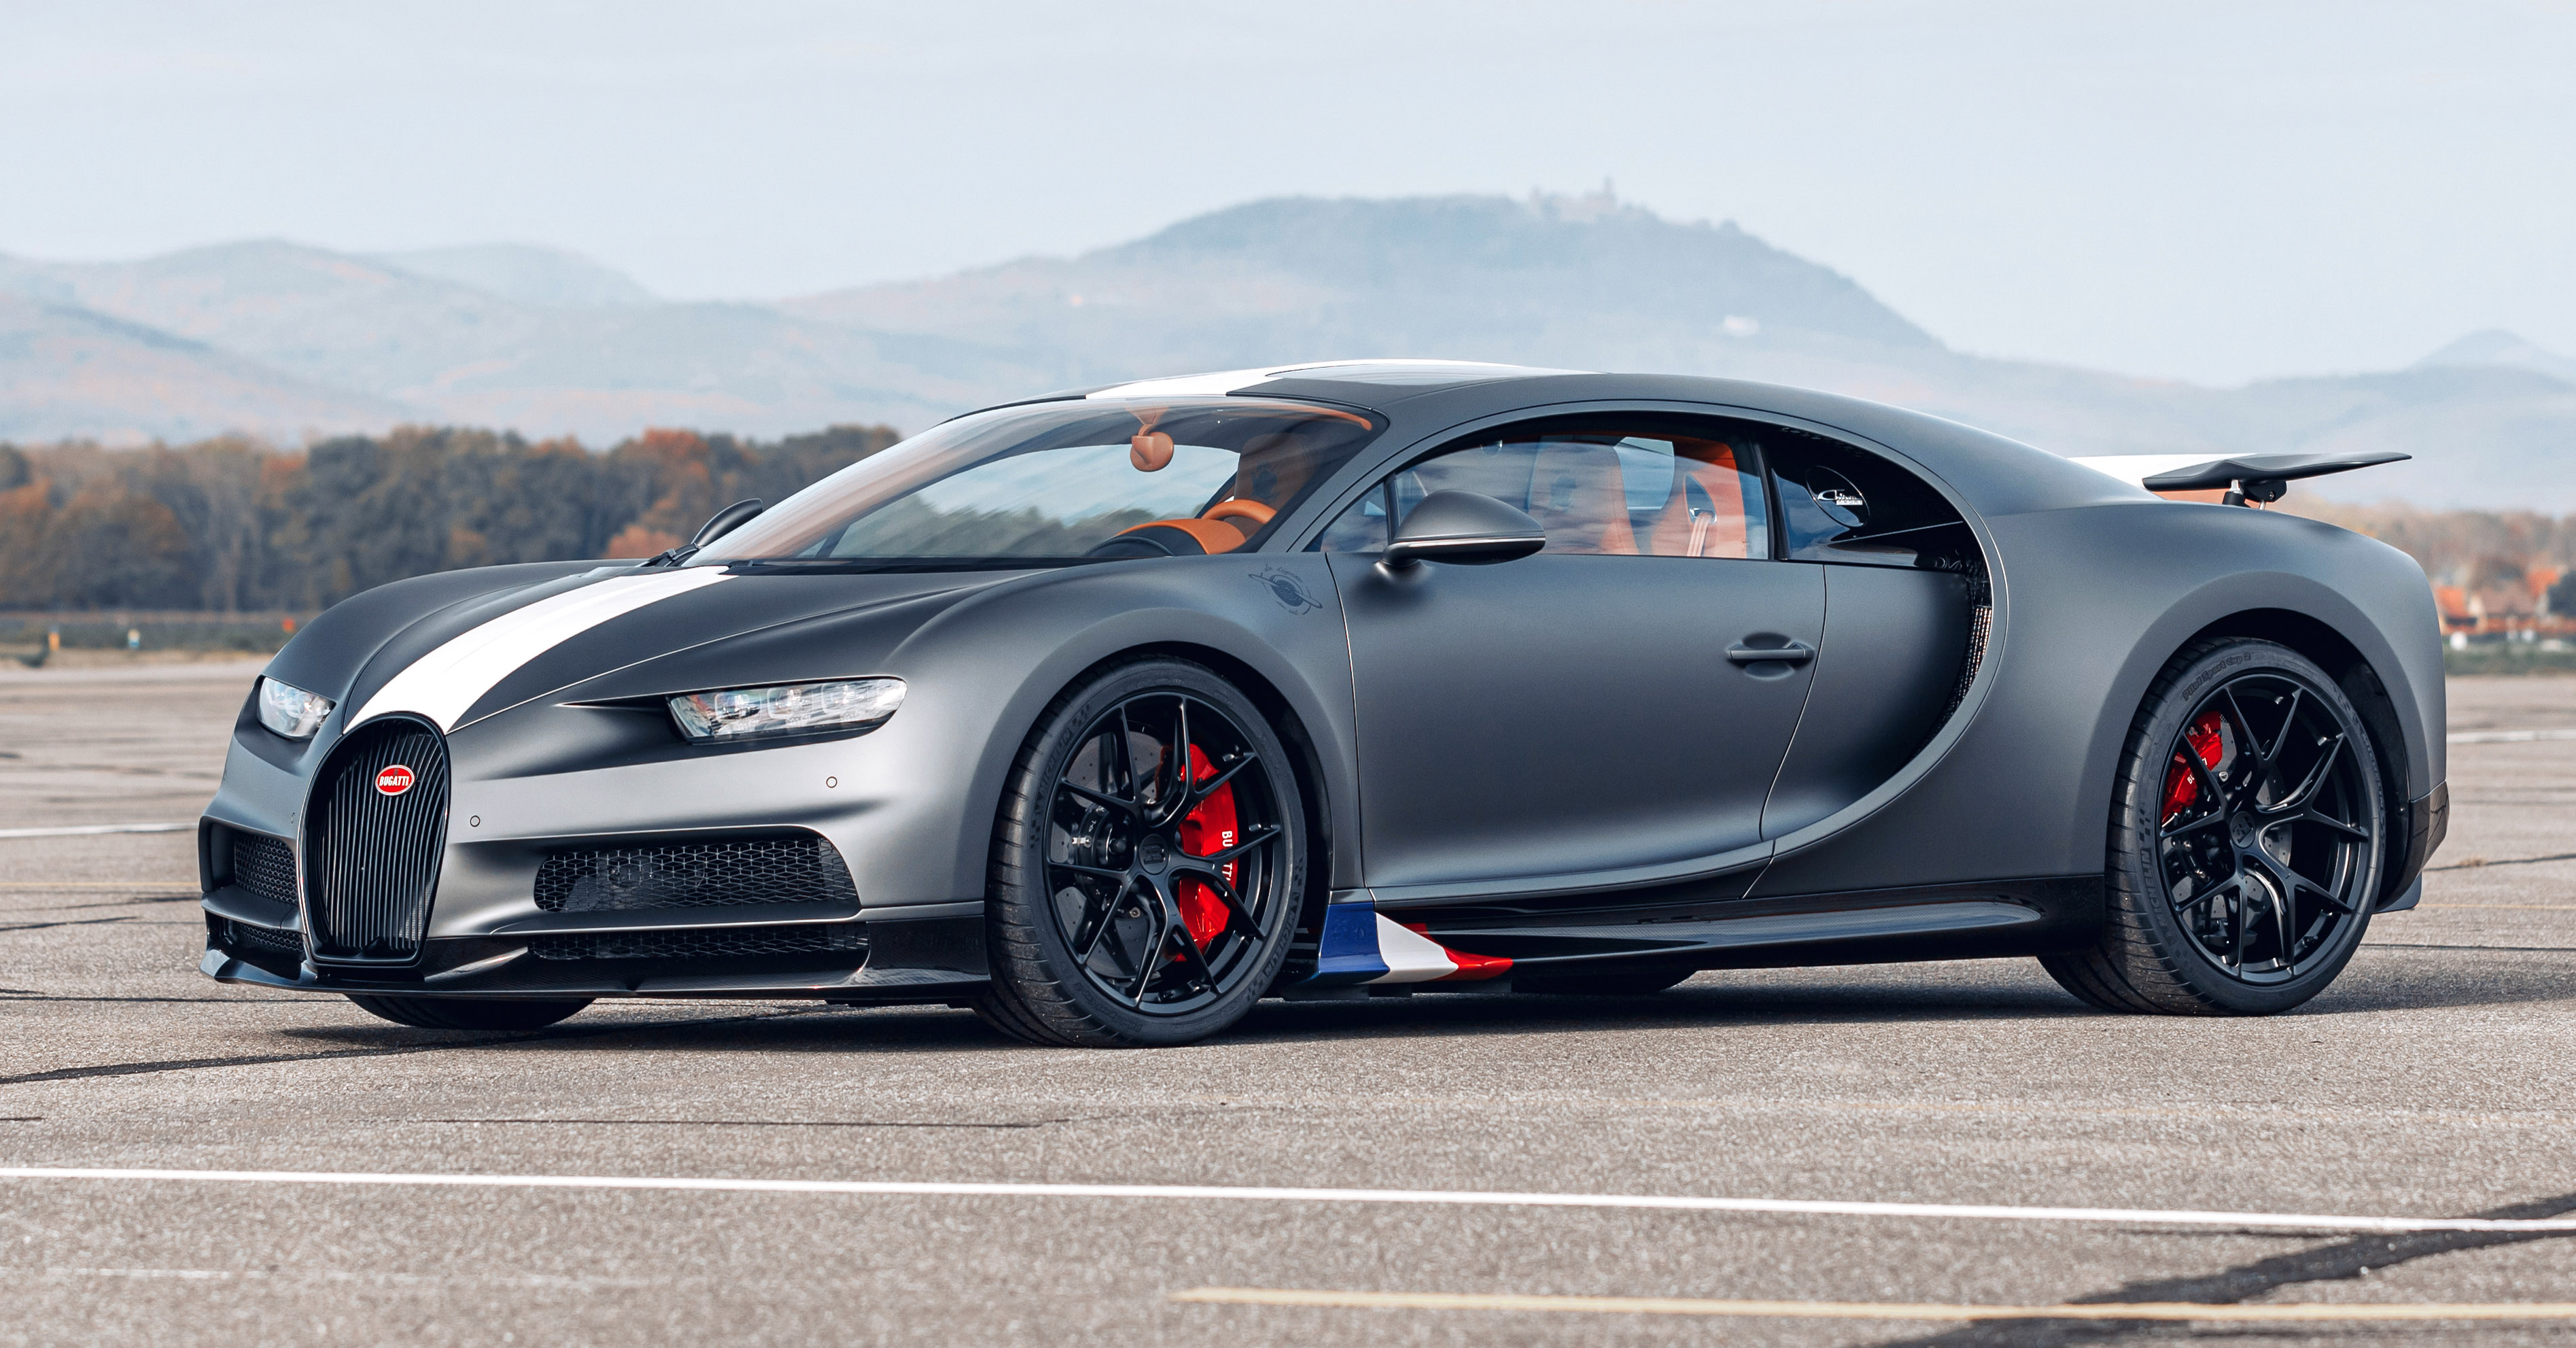 Bugatti Chiron Sport Les Legendes Du Ciel Revealed A Tribute To French Aviation History From Rm14 Million Paultan Org